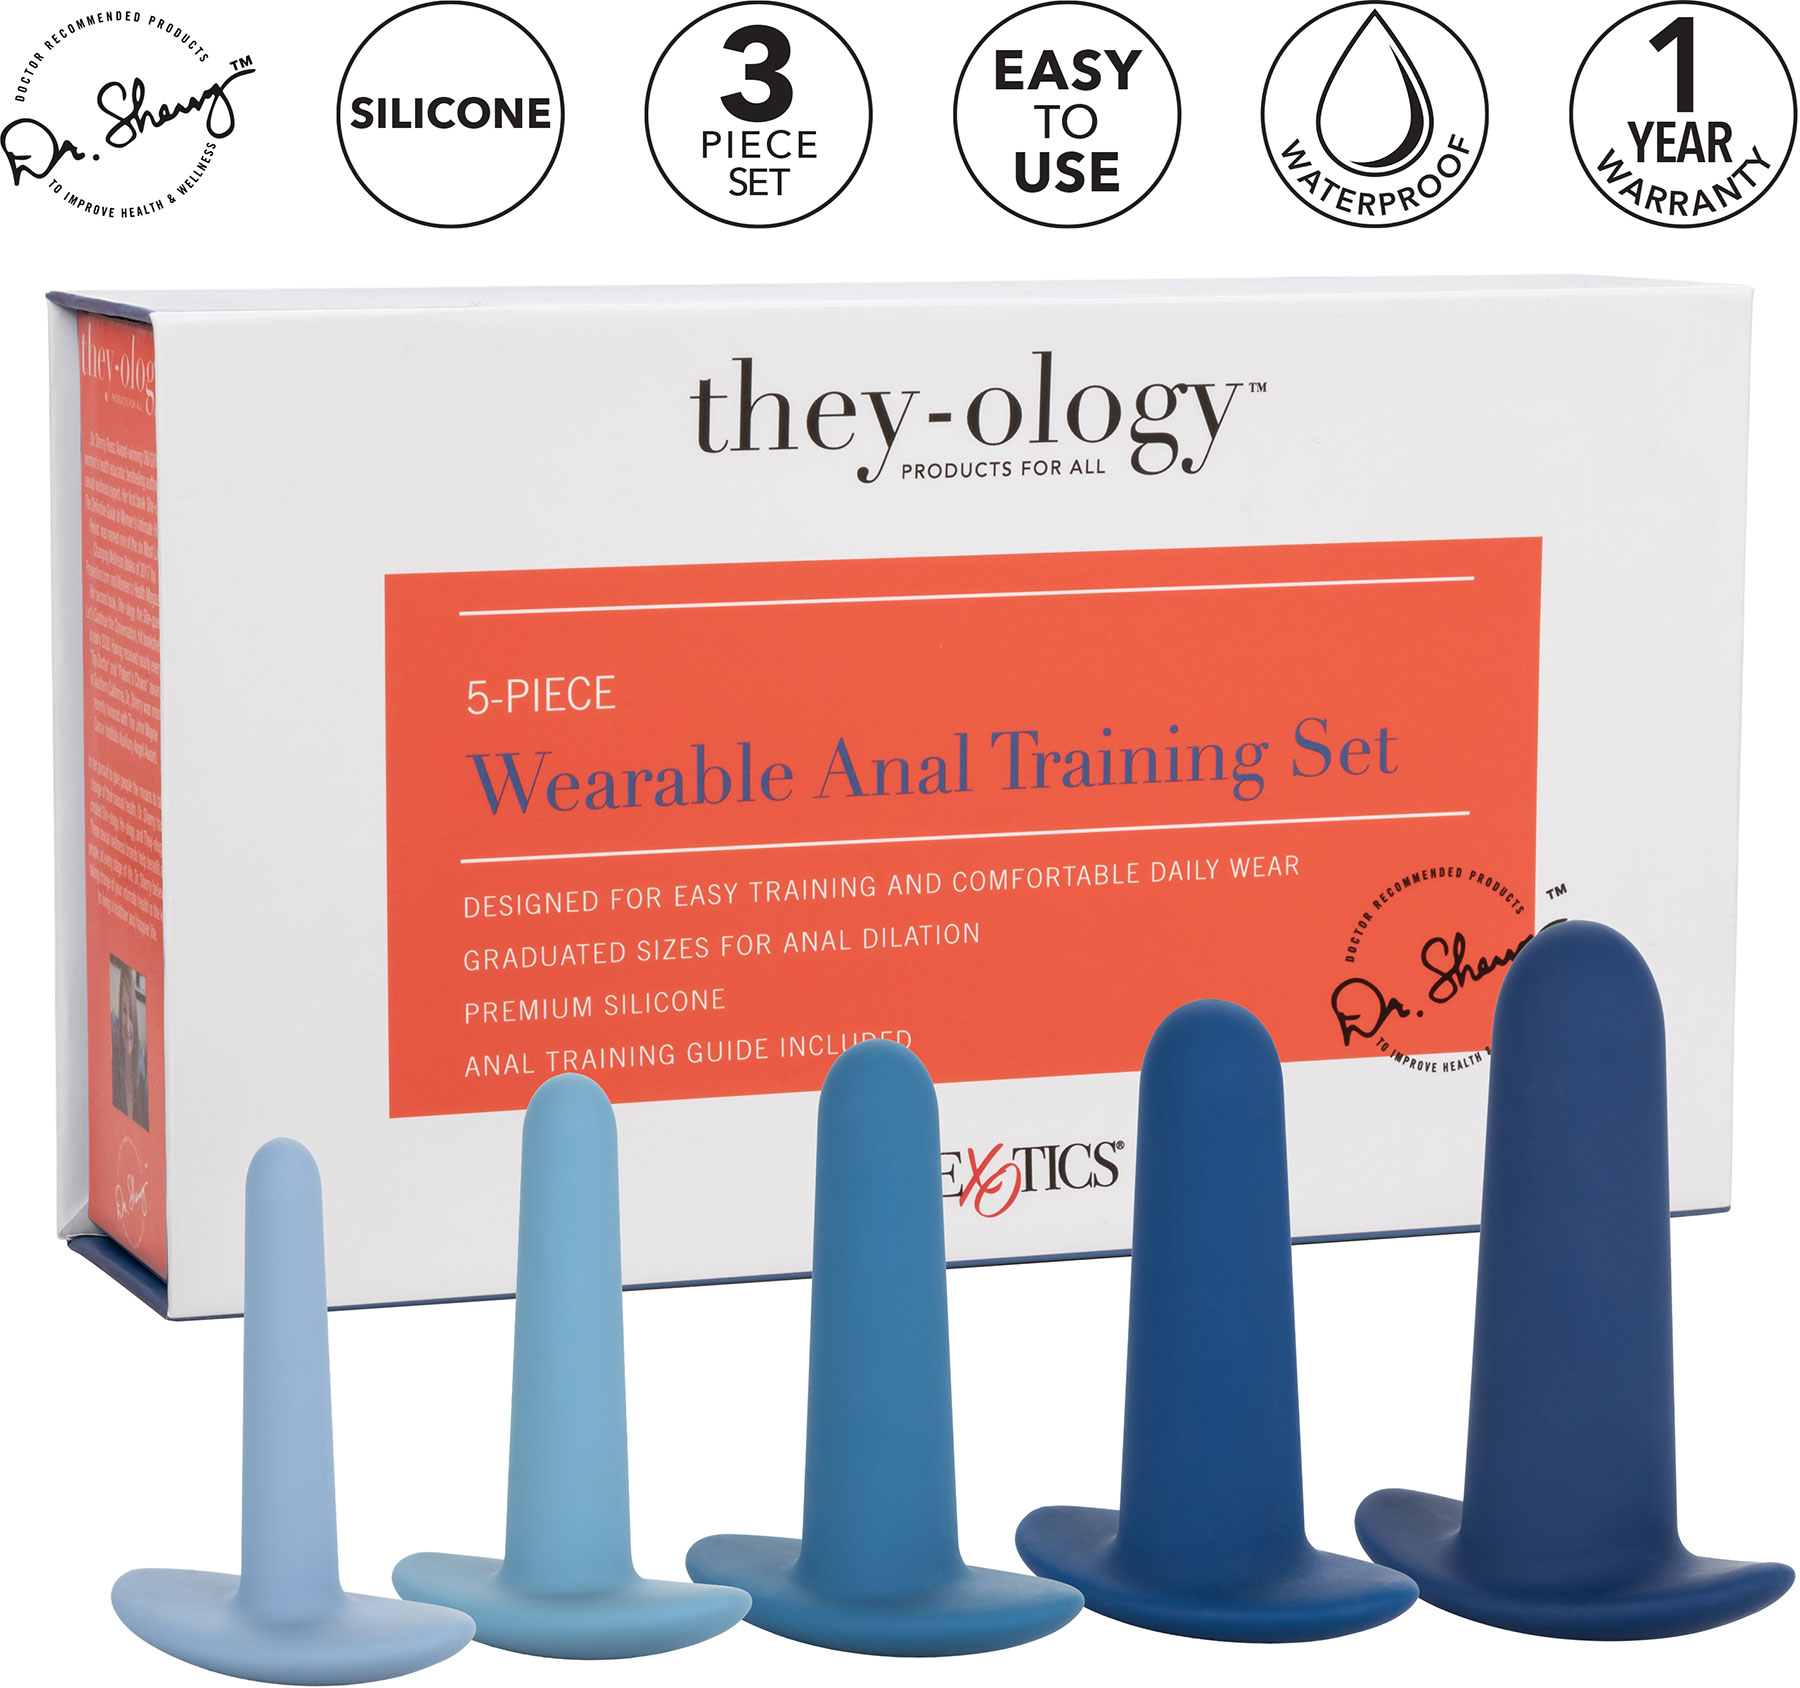 They-ology 5-Piece Wearable Silicone Anal Training Set - Features